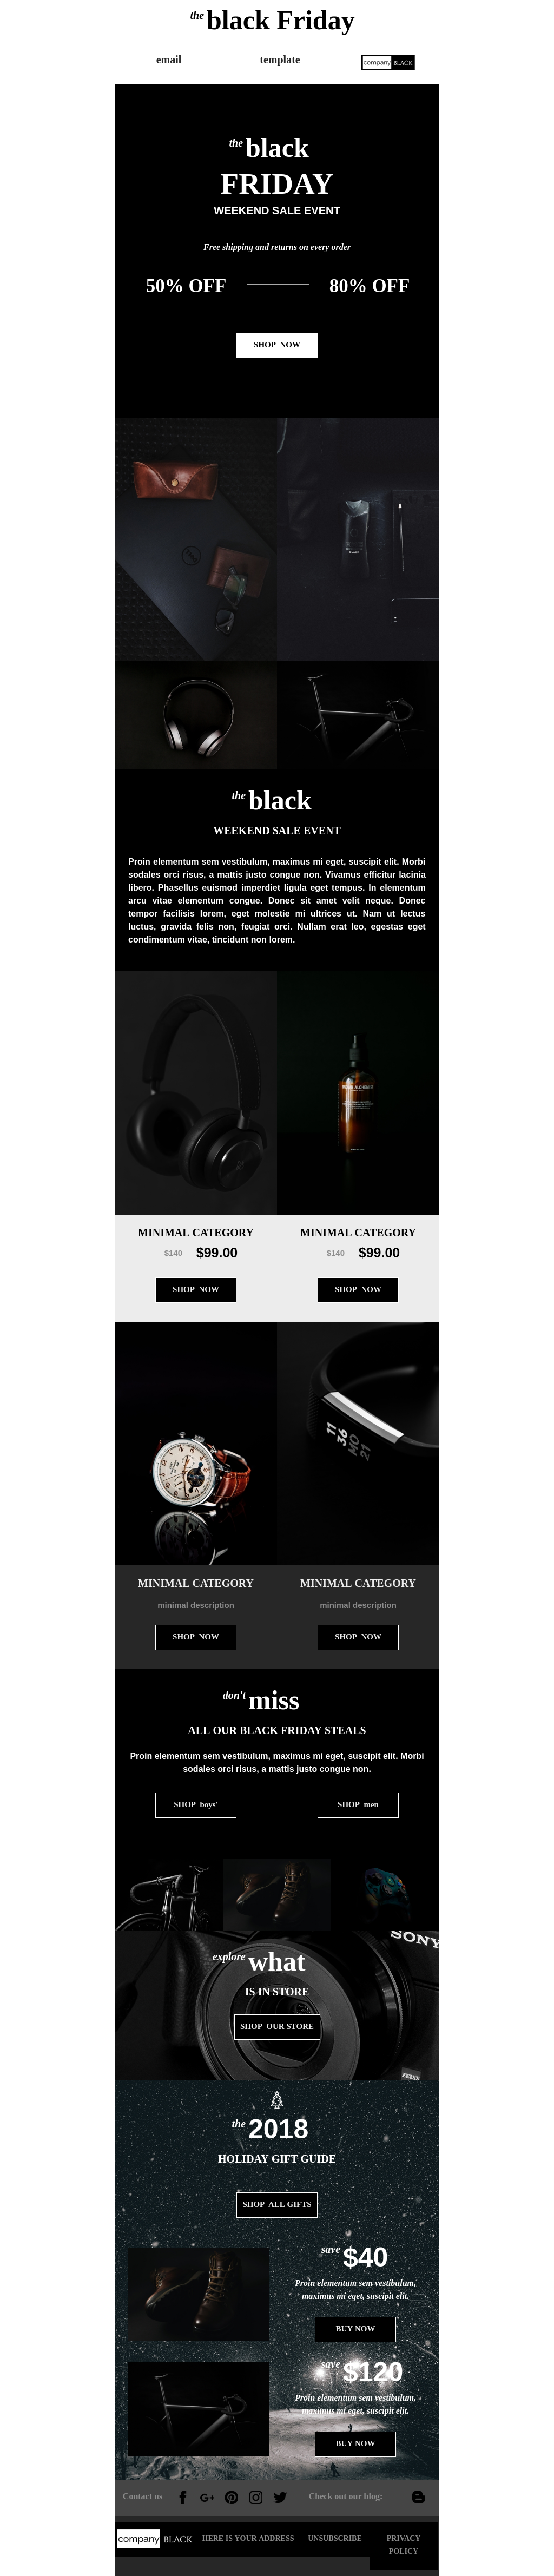 Black Friday ecommerce email campaign template